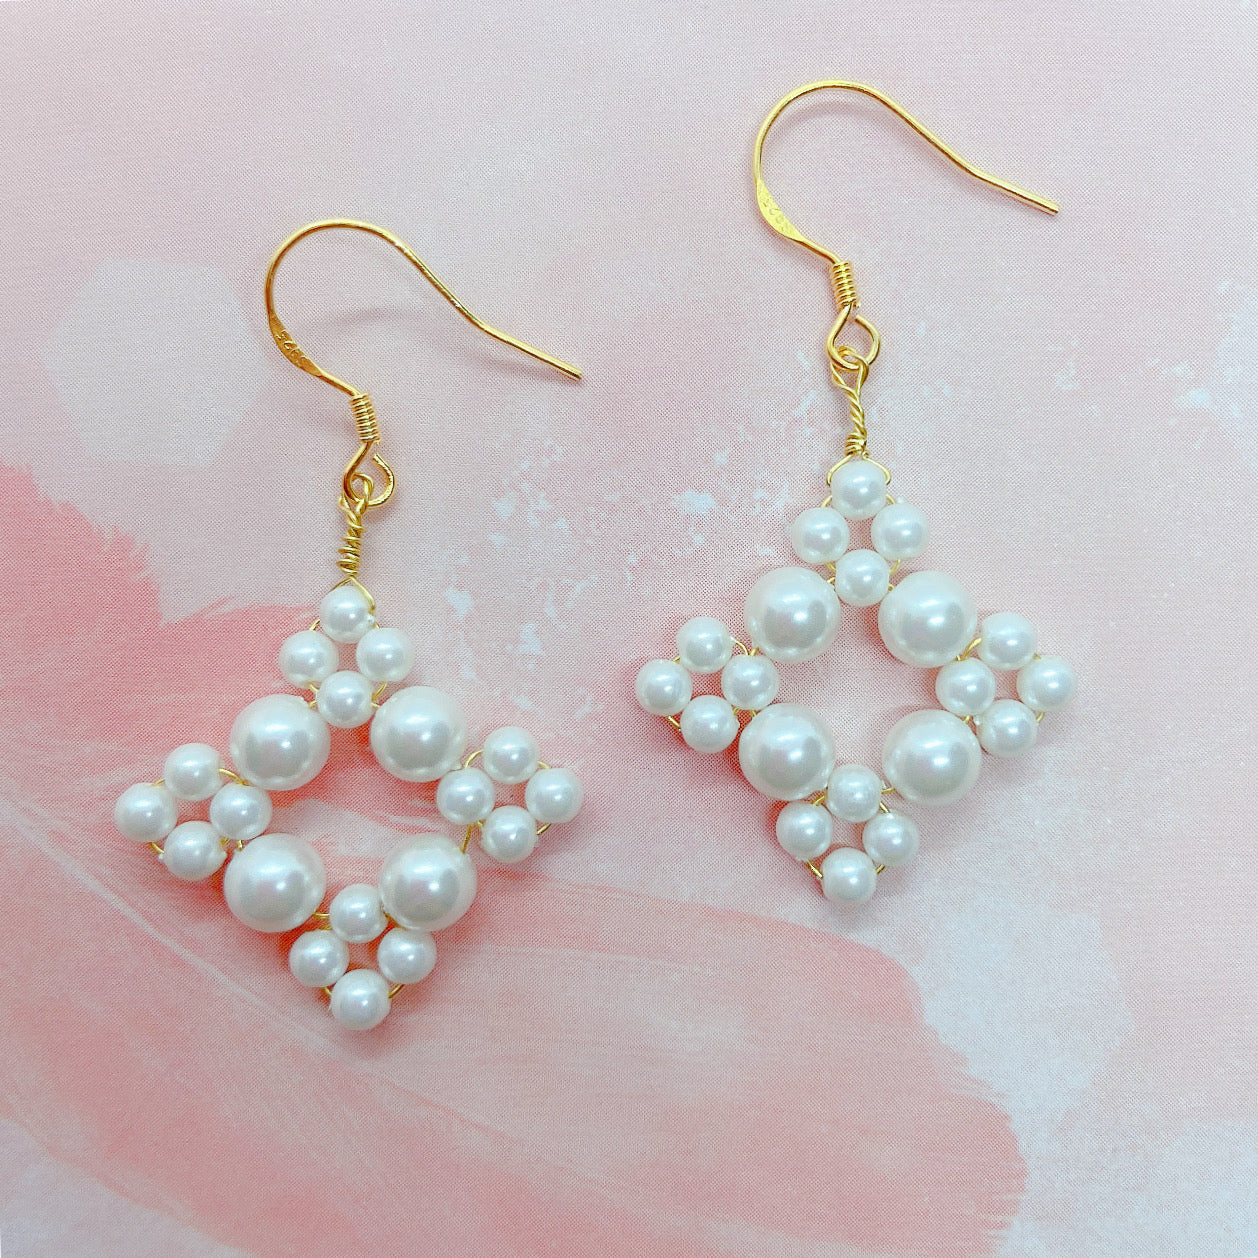 Beautiful Pearl Designed Handmade Earrings